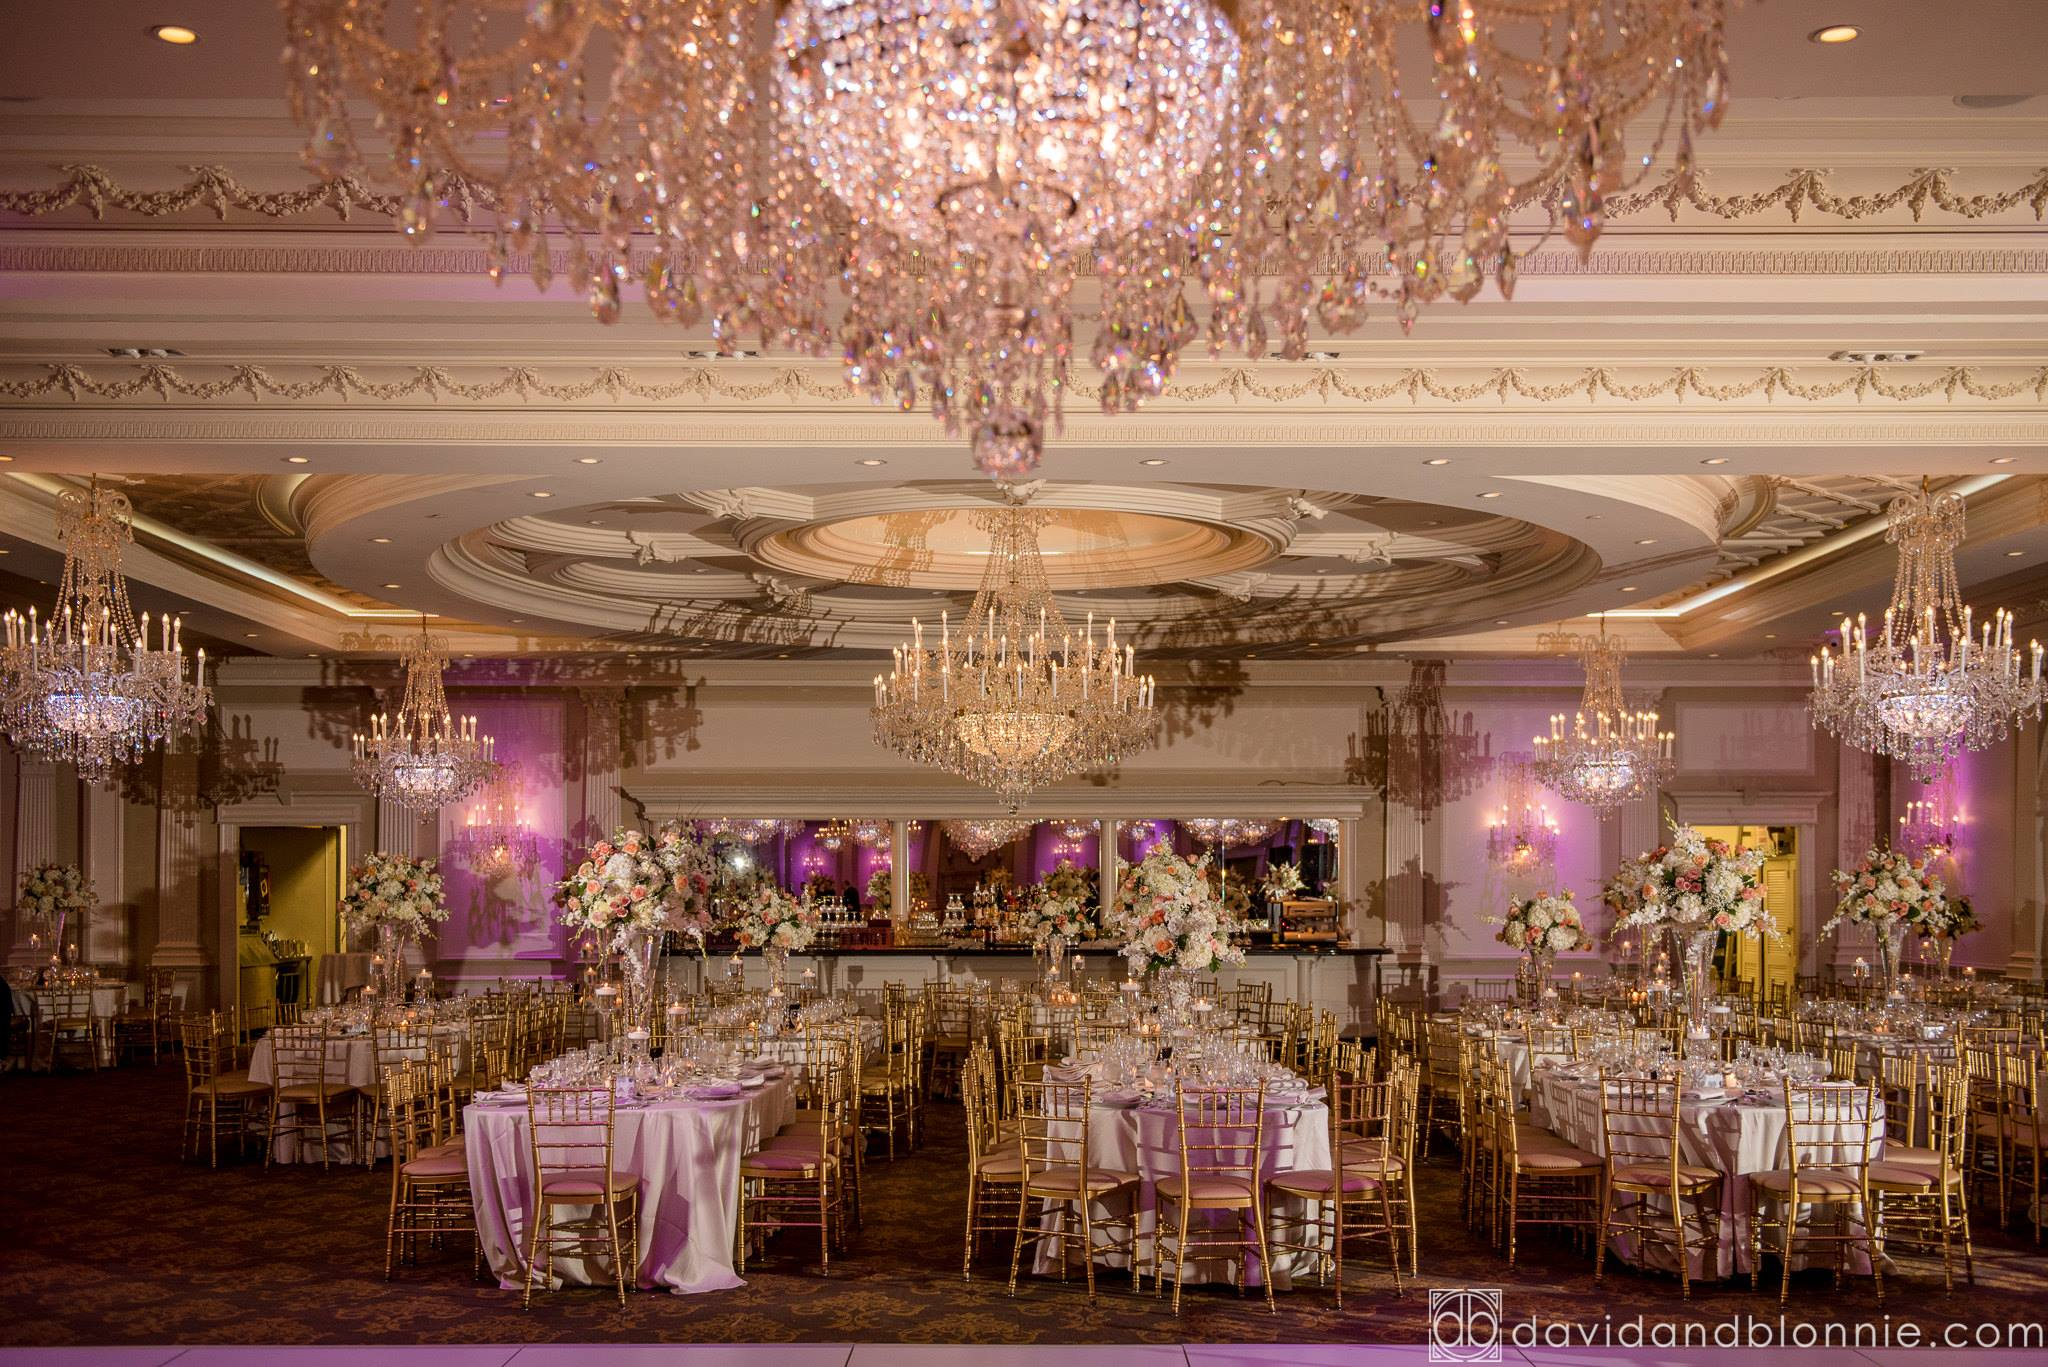 Sara Iyad S Muslim Wedding Reception Was Held At The Beautiful Rockleigh Country Club In New Jersey Stunning Decor And Flowers